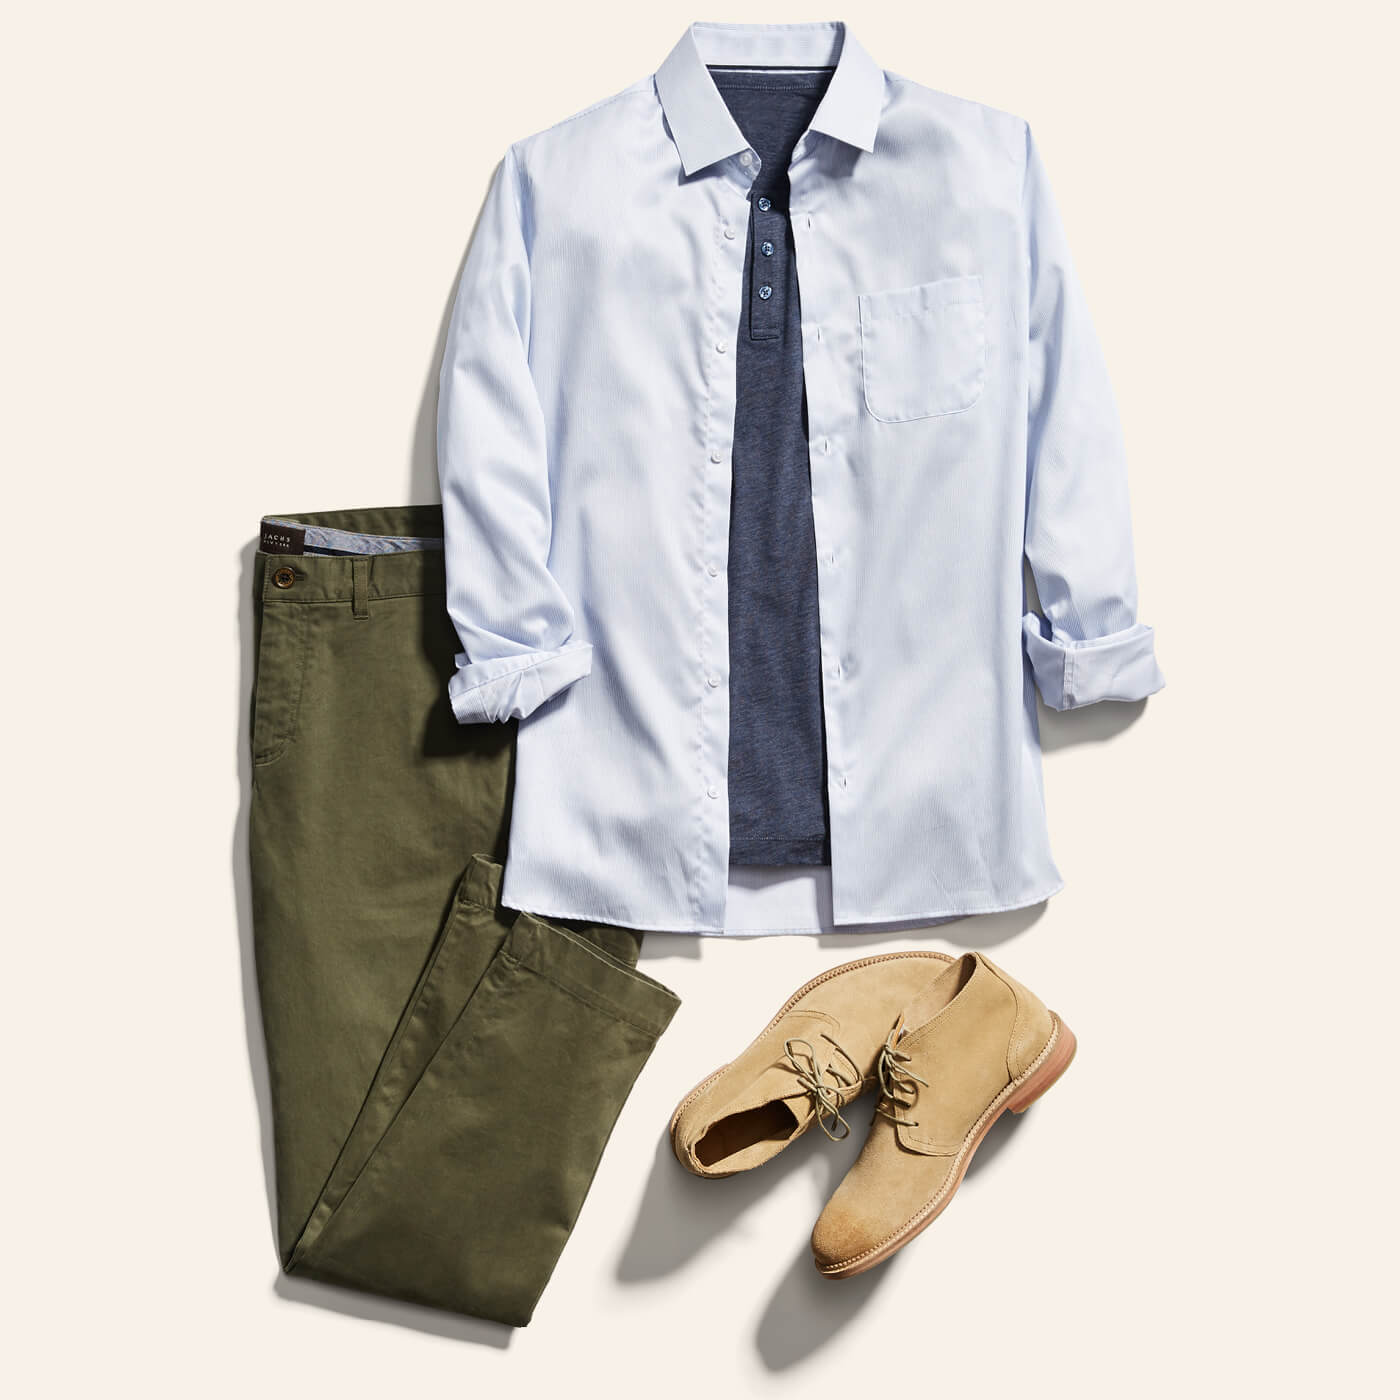 How to Dress Down a Dress Shirt